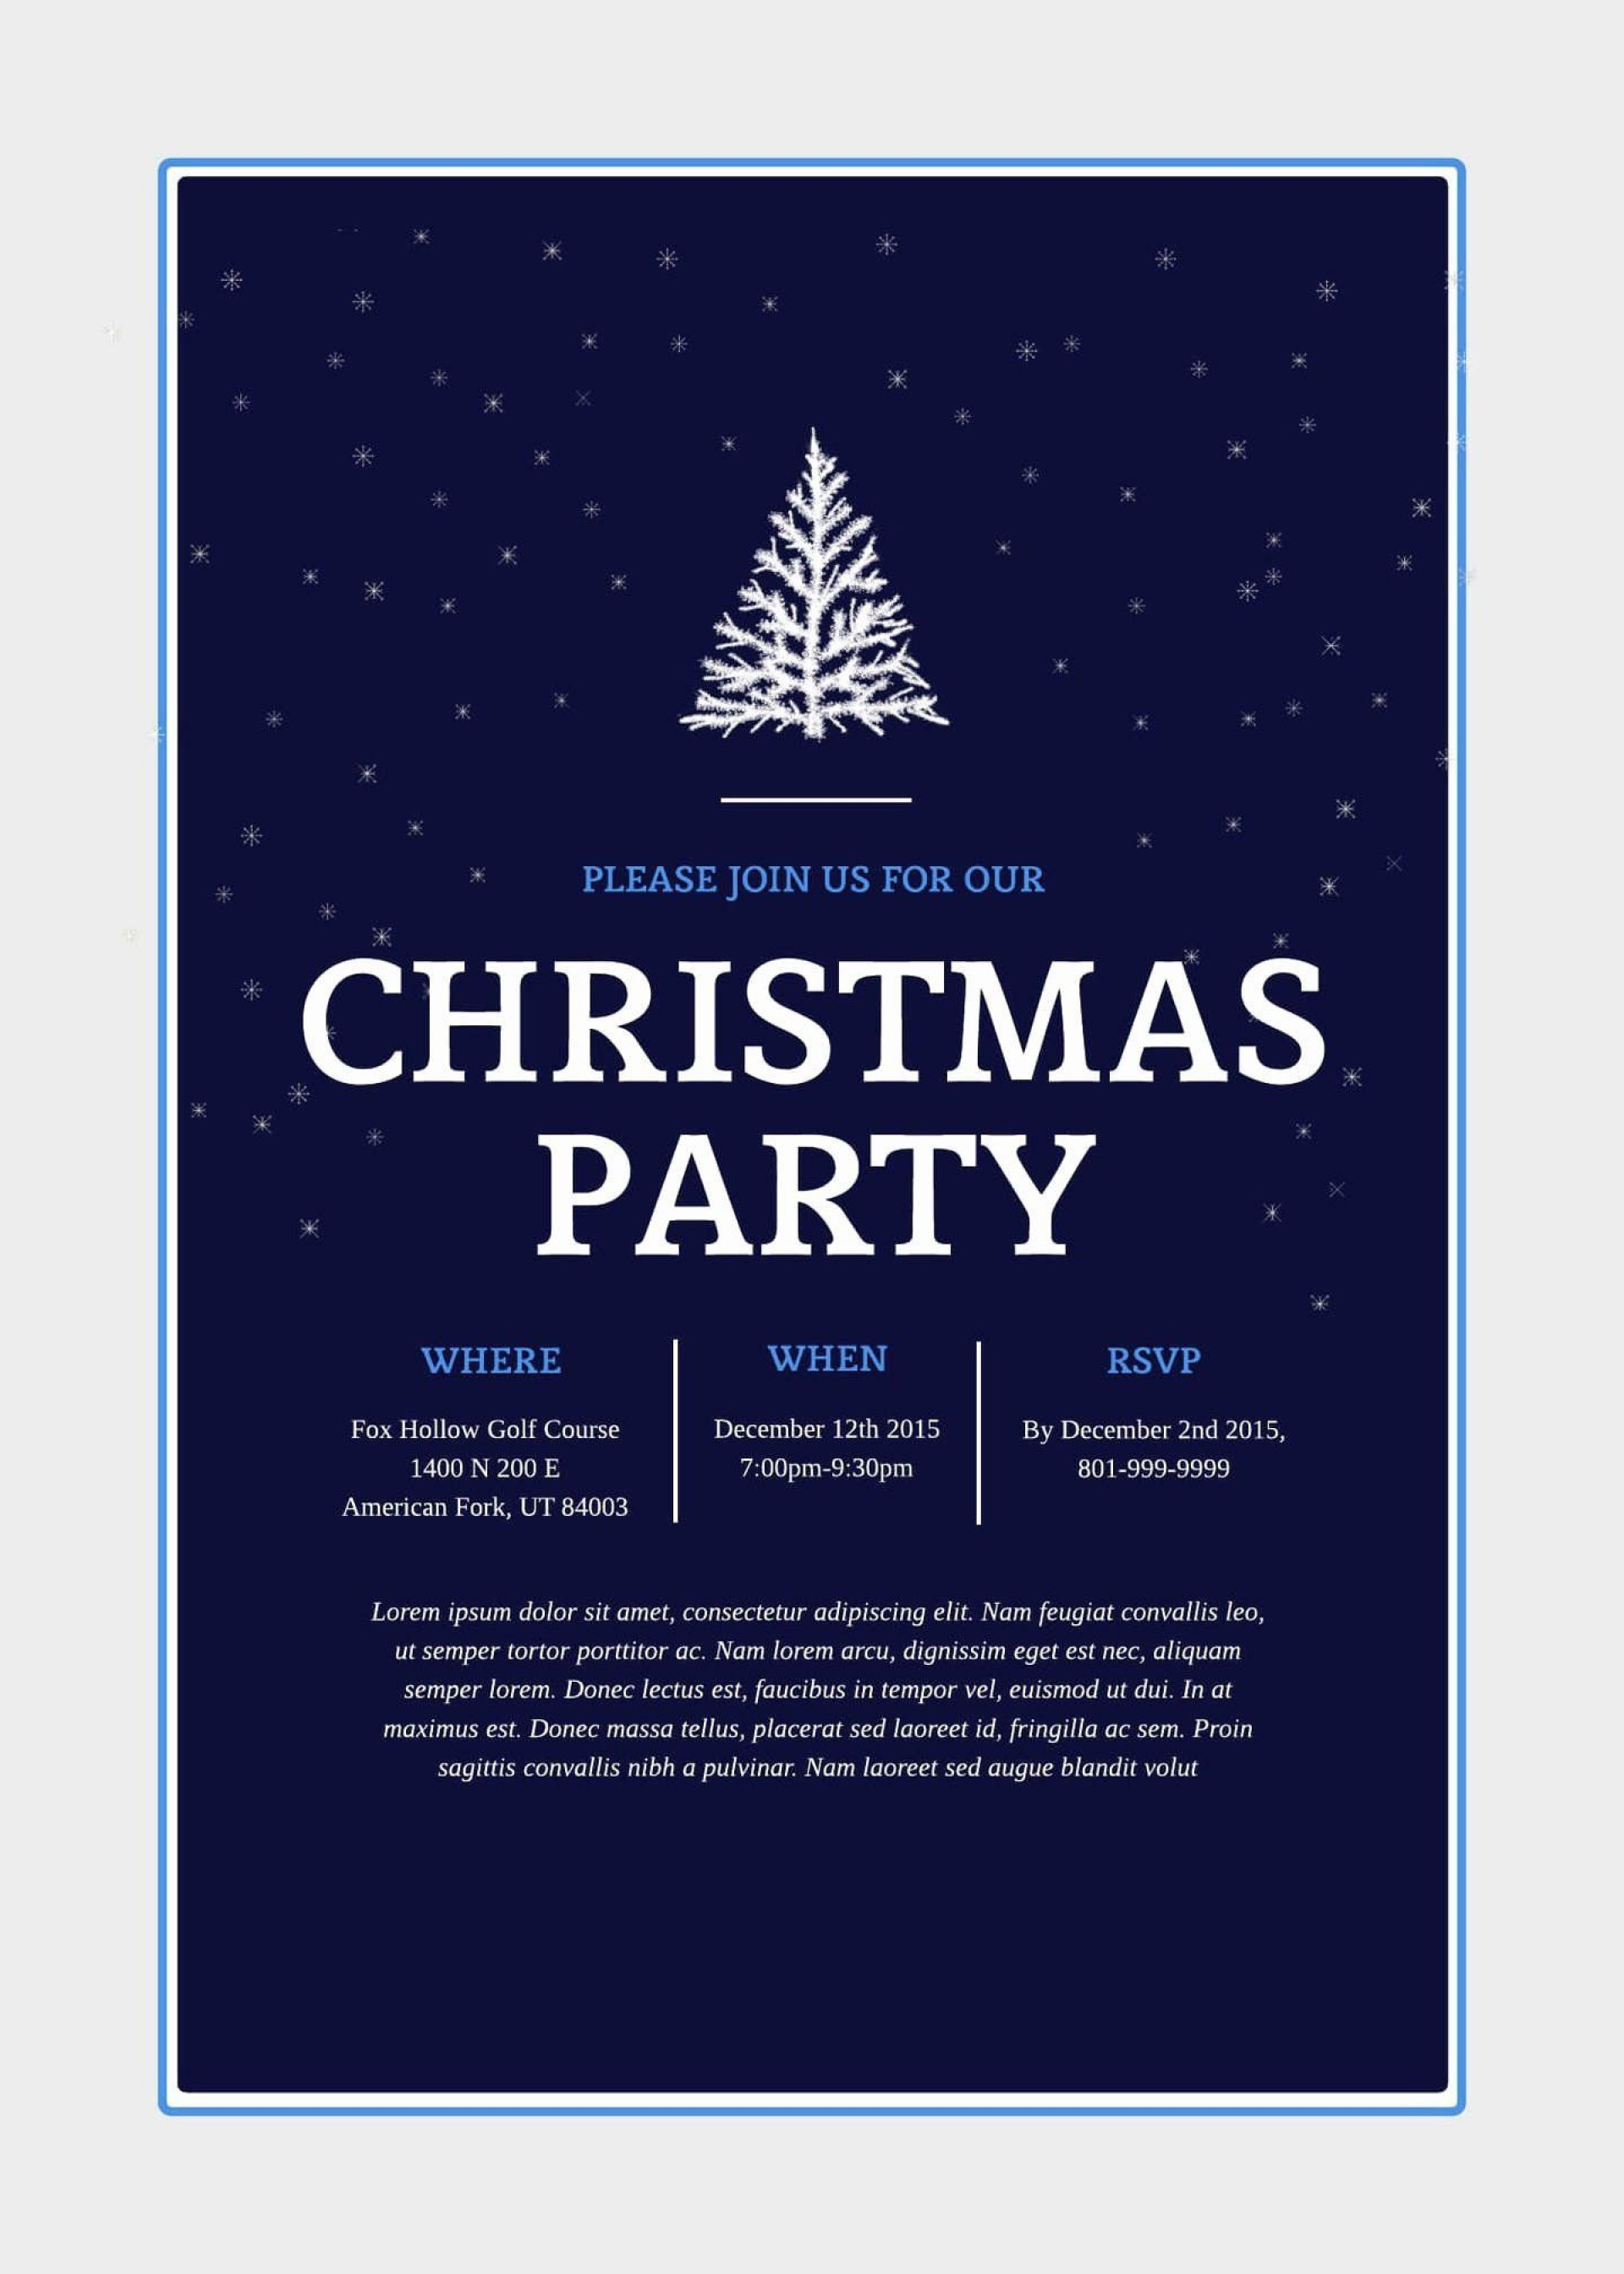 002 Archaicawful Free Email Holiday Party Invitation Template Highest Quality  Templates Christma1920